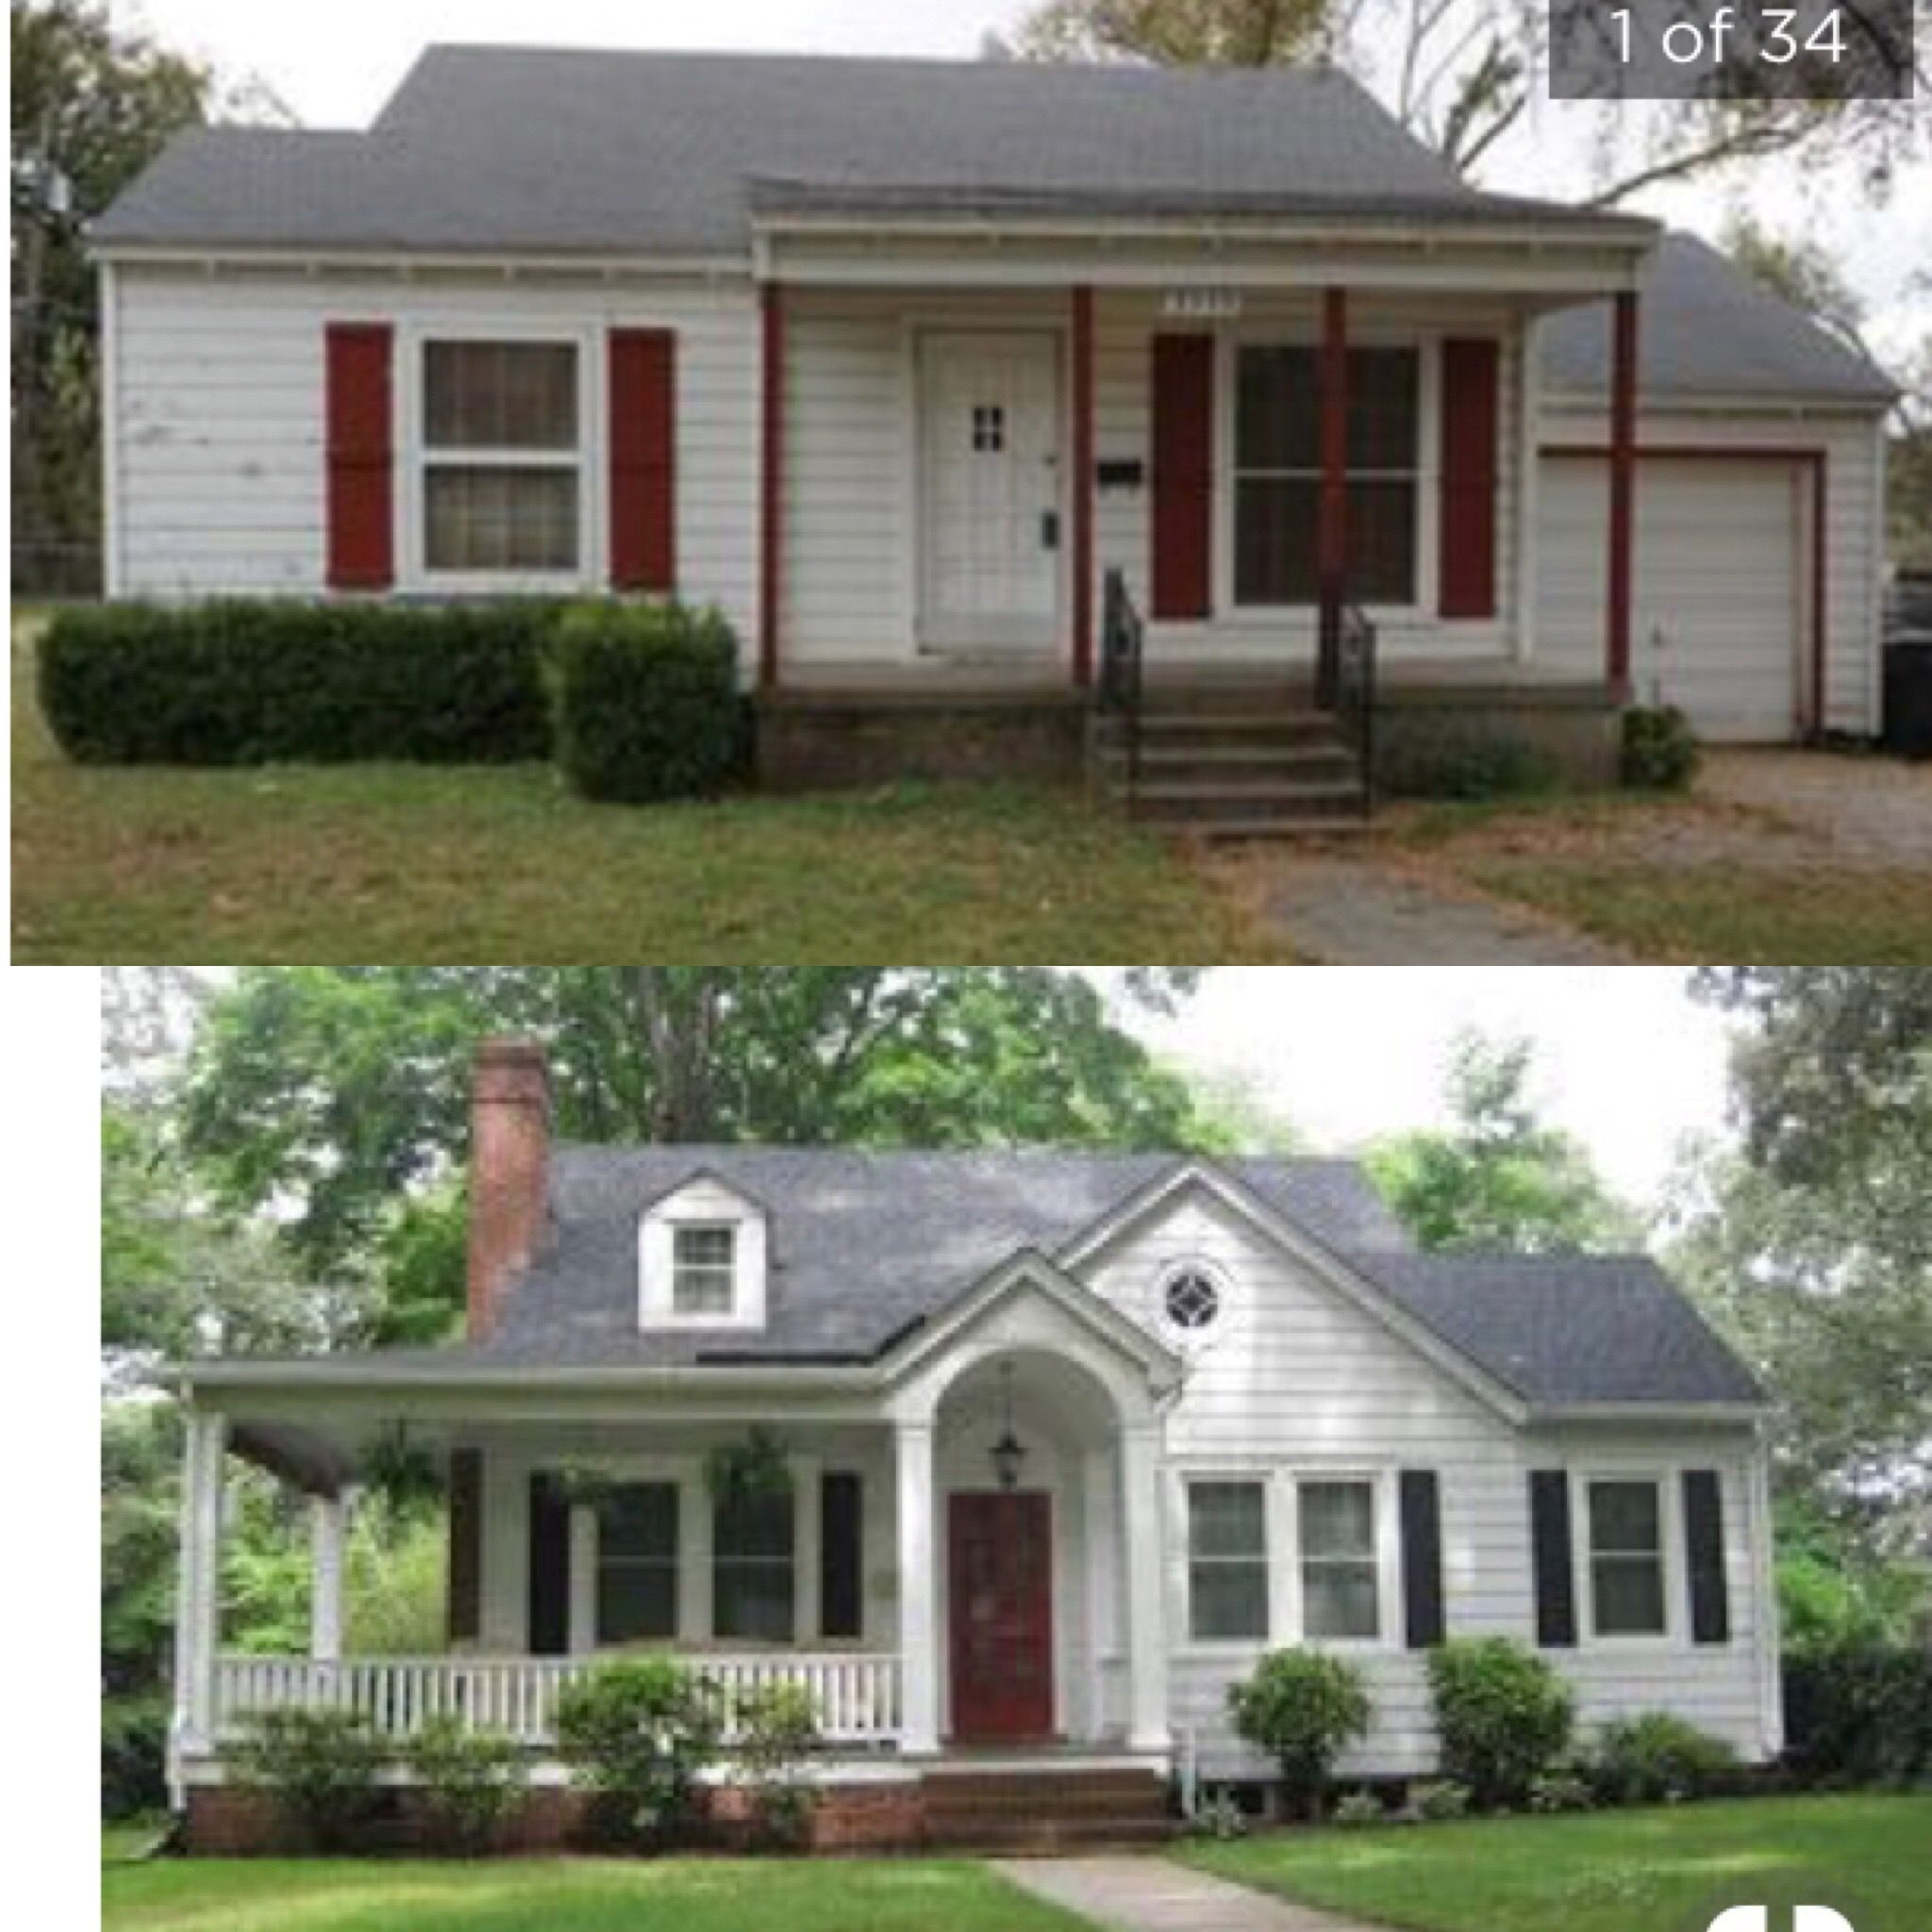 Atlanta Bungalow Renovation: Pin By Kasey Daley On Before & Afters